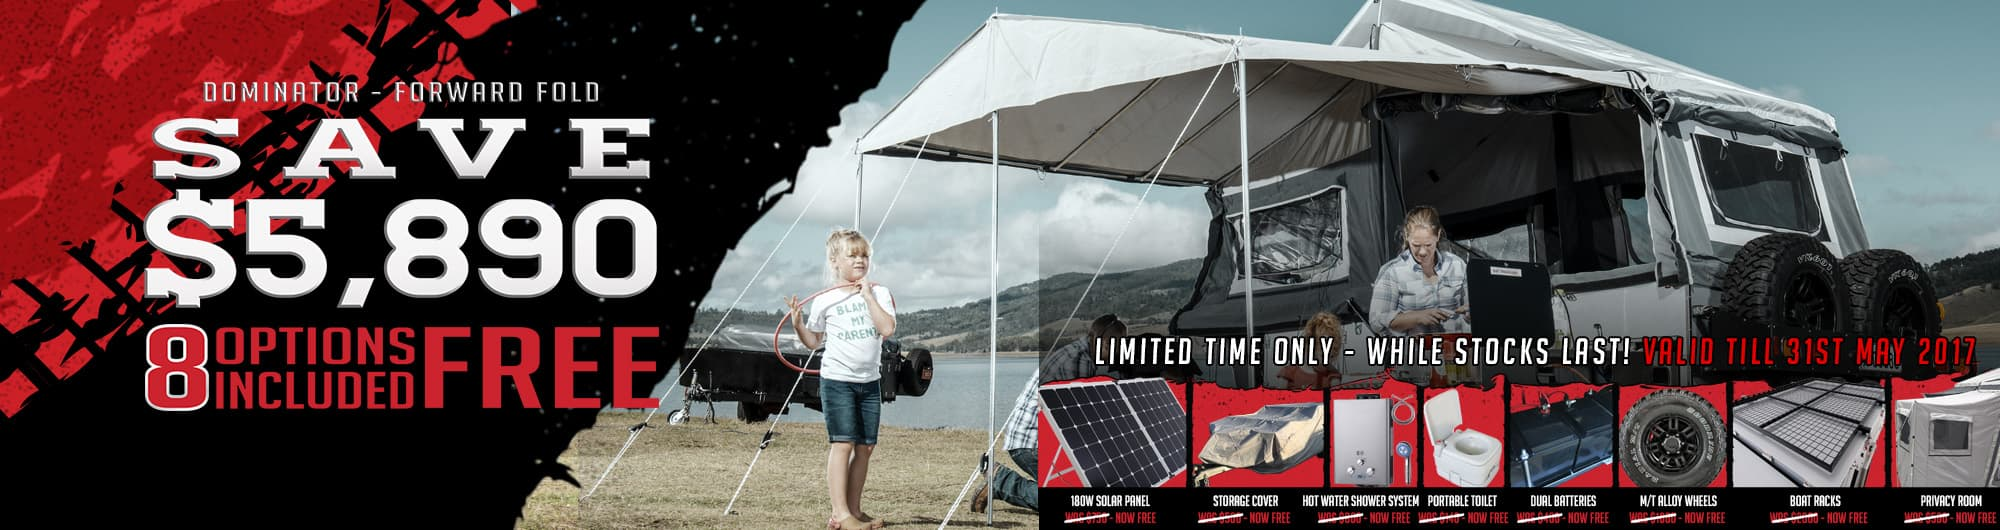 Go See Australia with a Black Series Camper Trailer